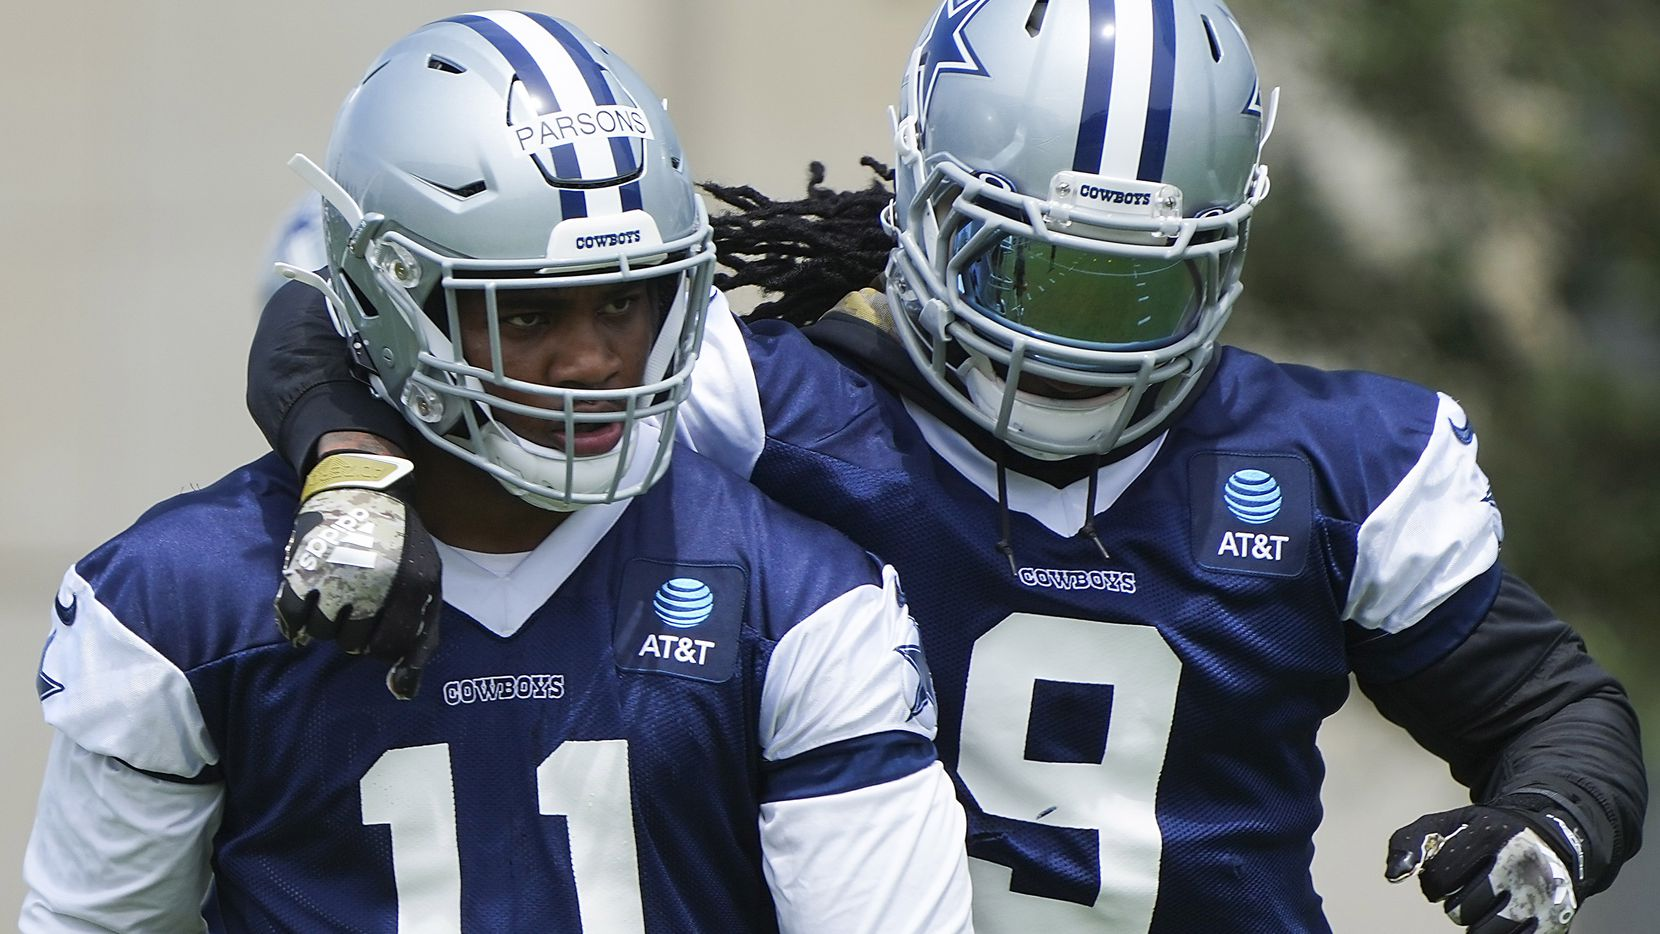 Dallas Cowboys linebacker Jaylon Smith (9) puts an arm around linebacker Micah Parsons (11) during a minicamp practice at The Star on Tuesday, June 8, 2021, in Frisco.